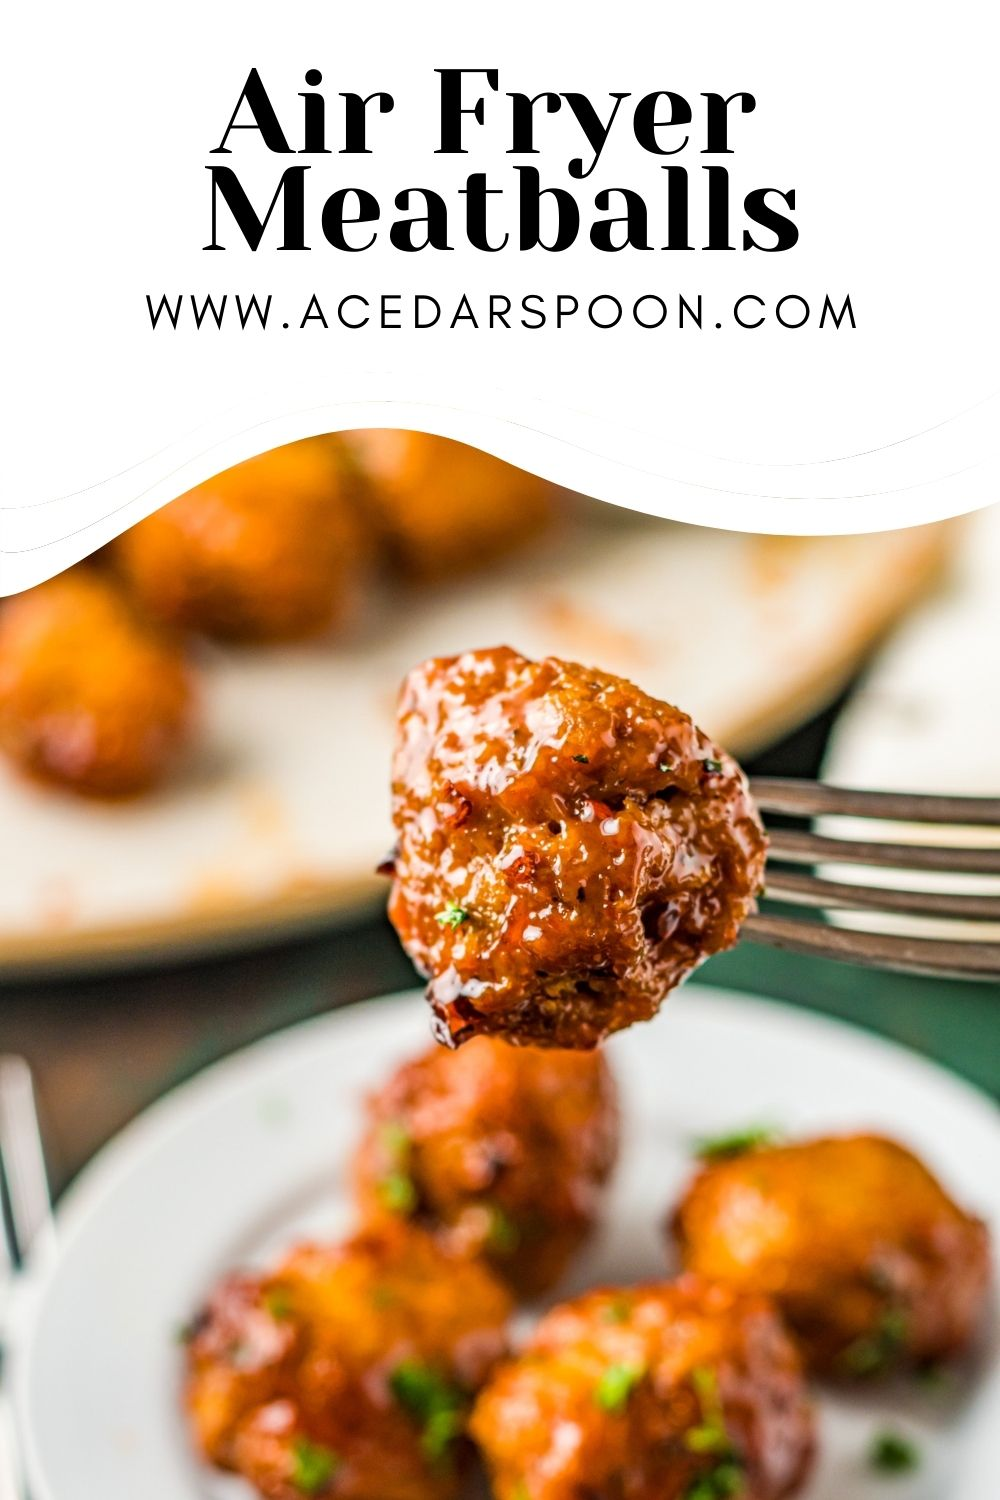 Air Fryer Meatballs with logo.